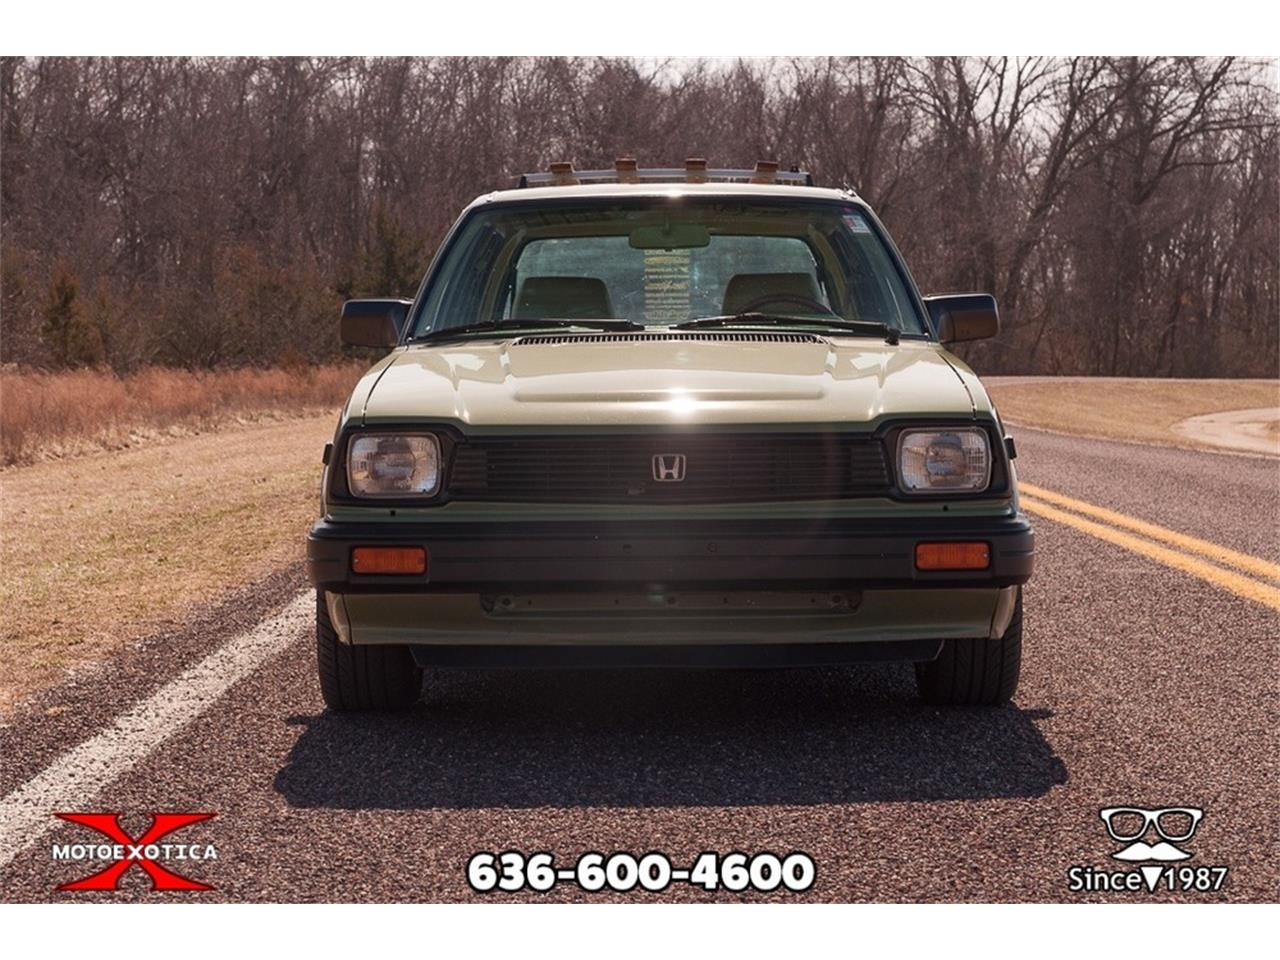 1983 Honda Civic Wagon for sale in St. Louis, MO – photo 7